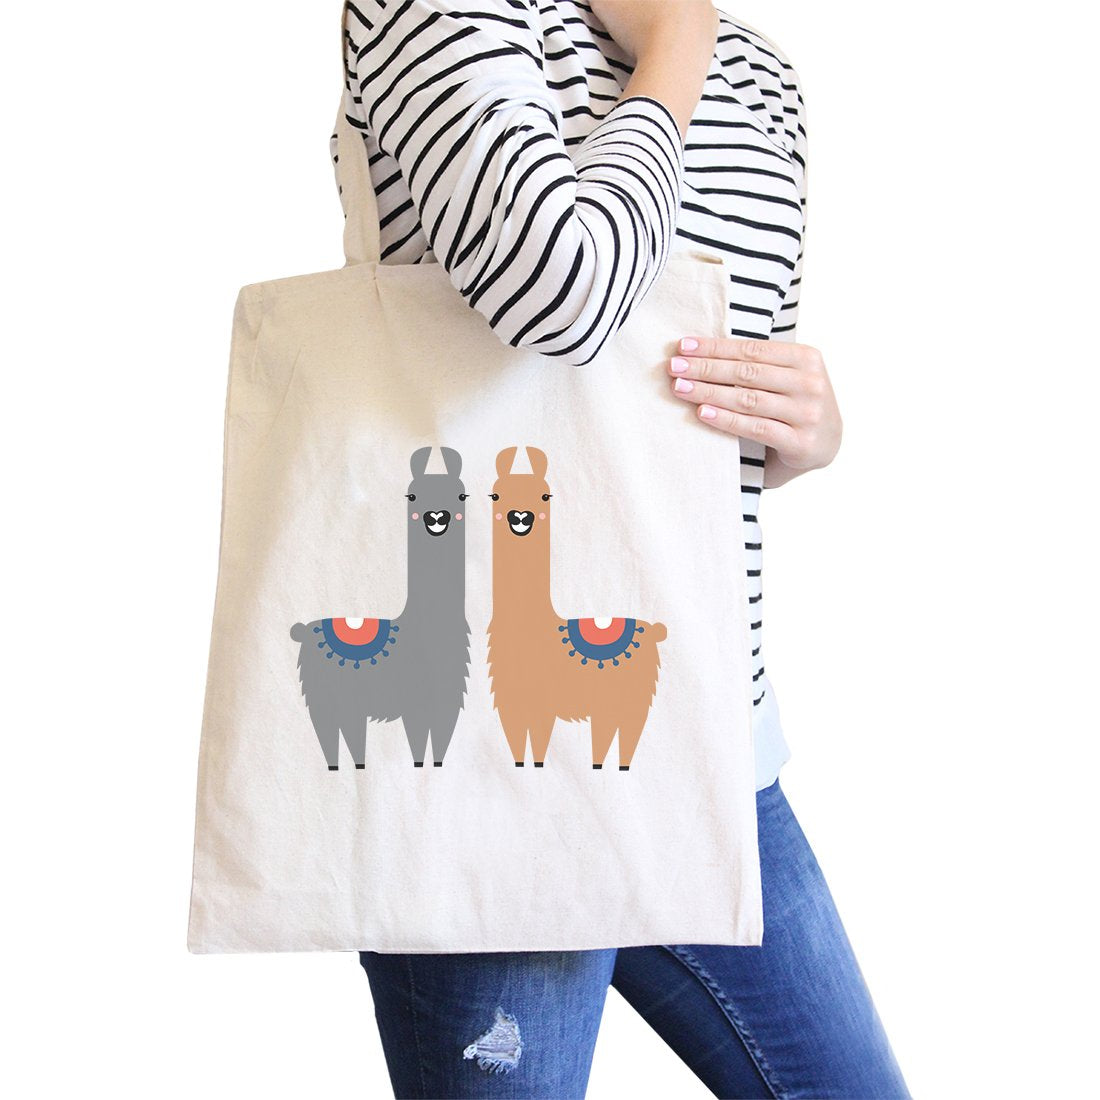 Llama Pattern Canvas Shoulder Bag Cute Foldable Tote Bag For Women CoolHatcher at TheArtOfLiving.Earth